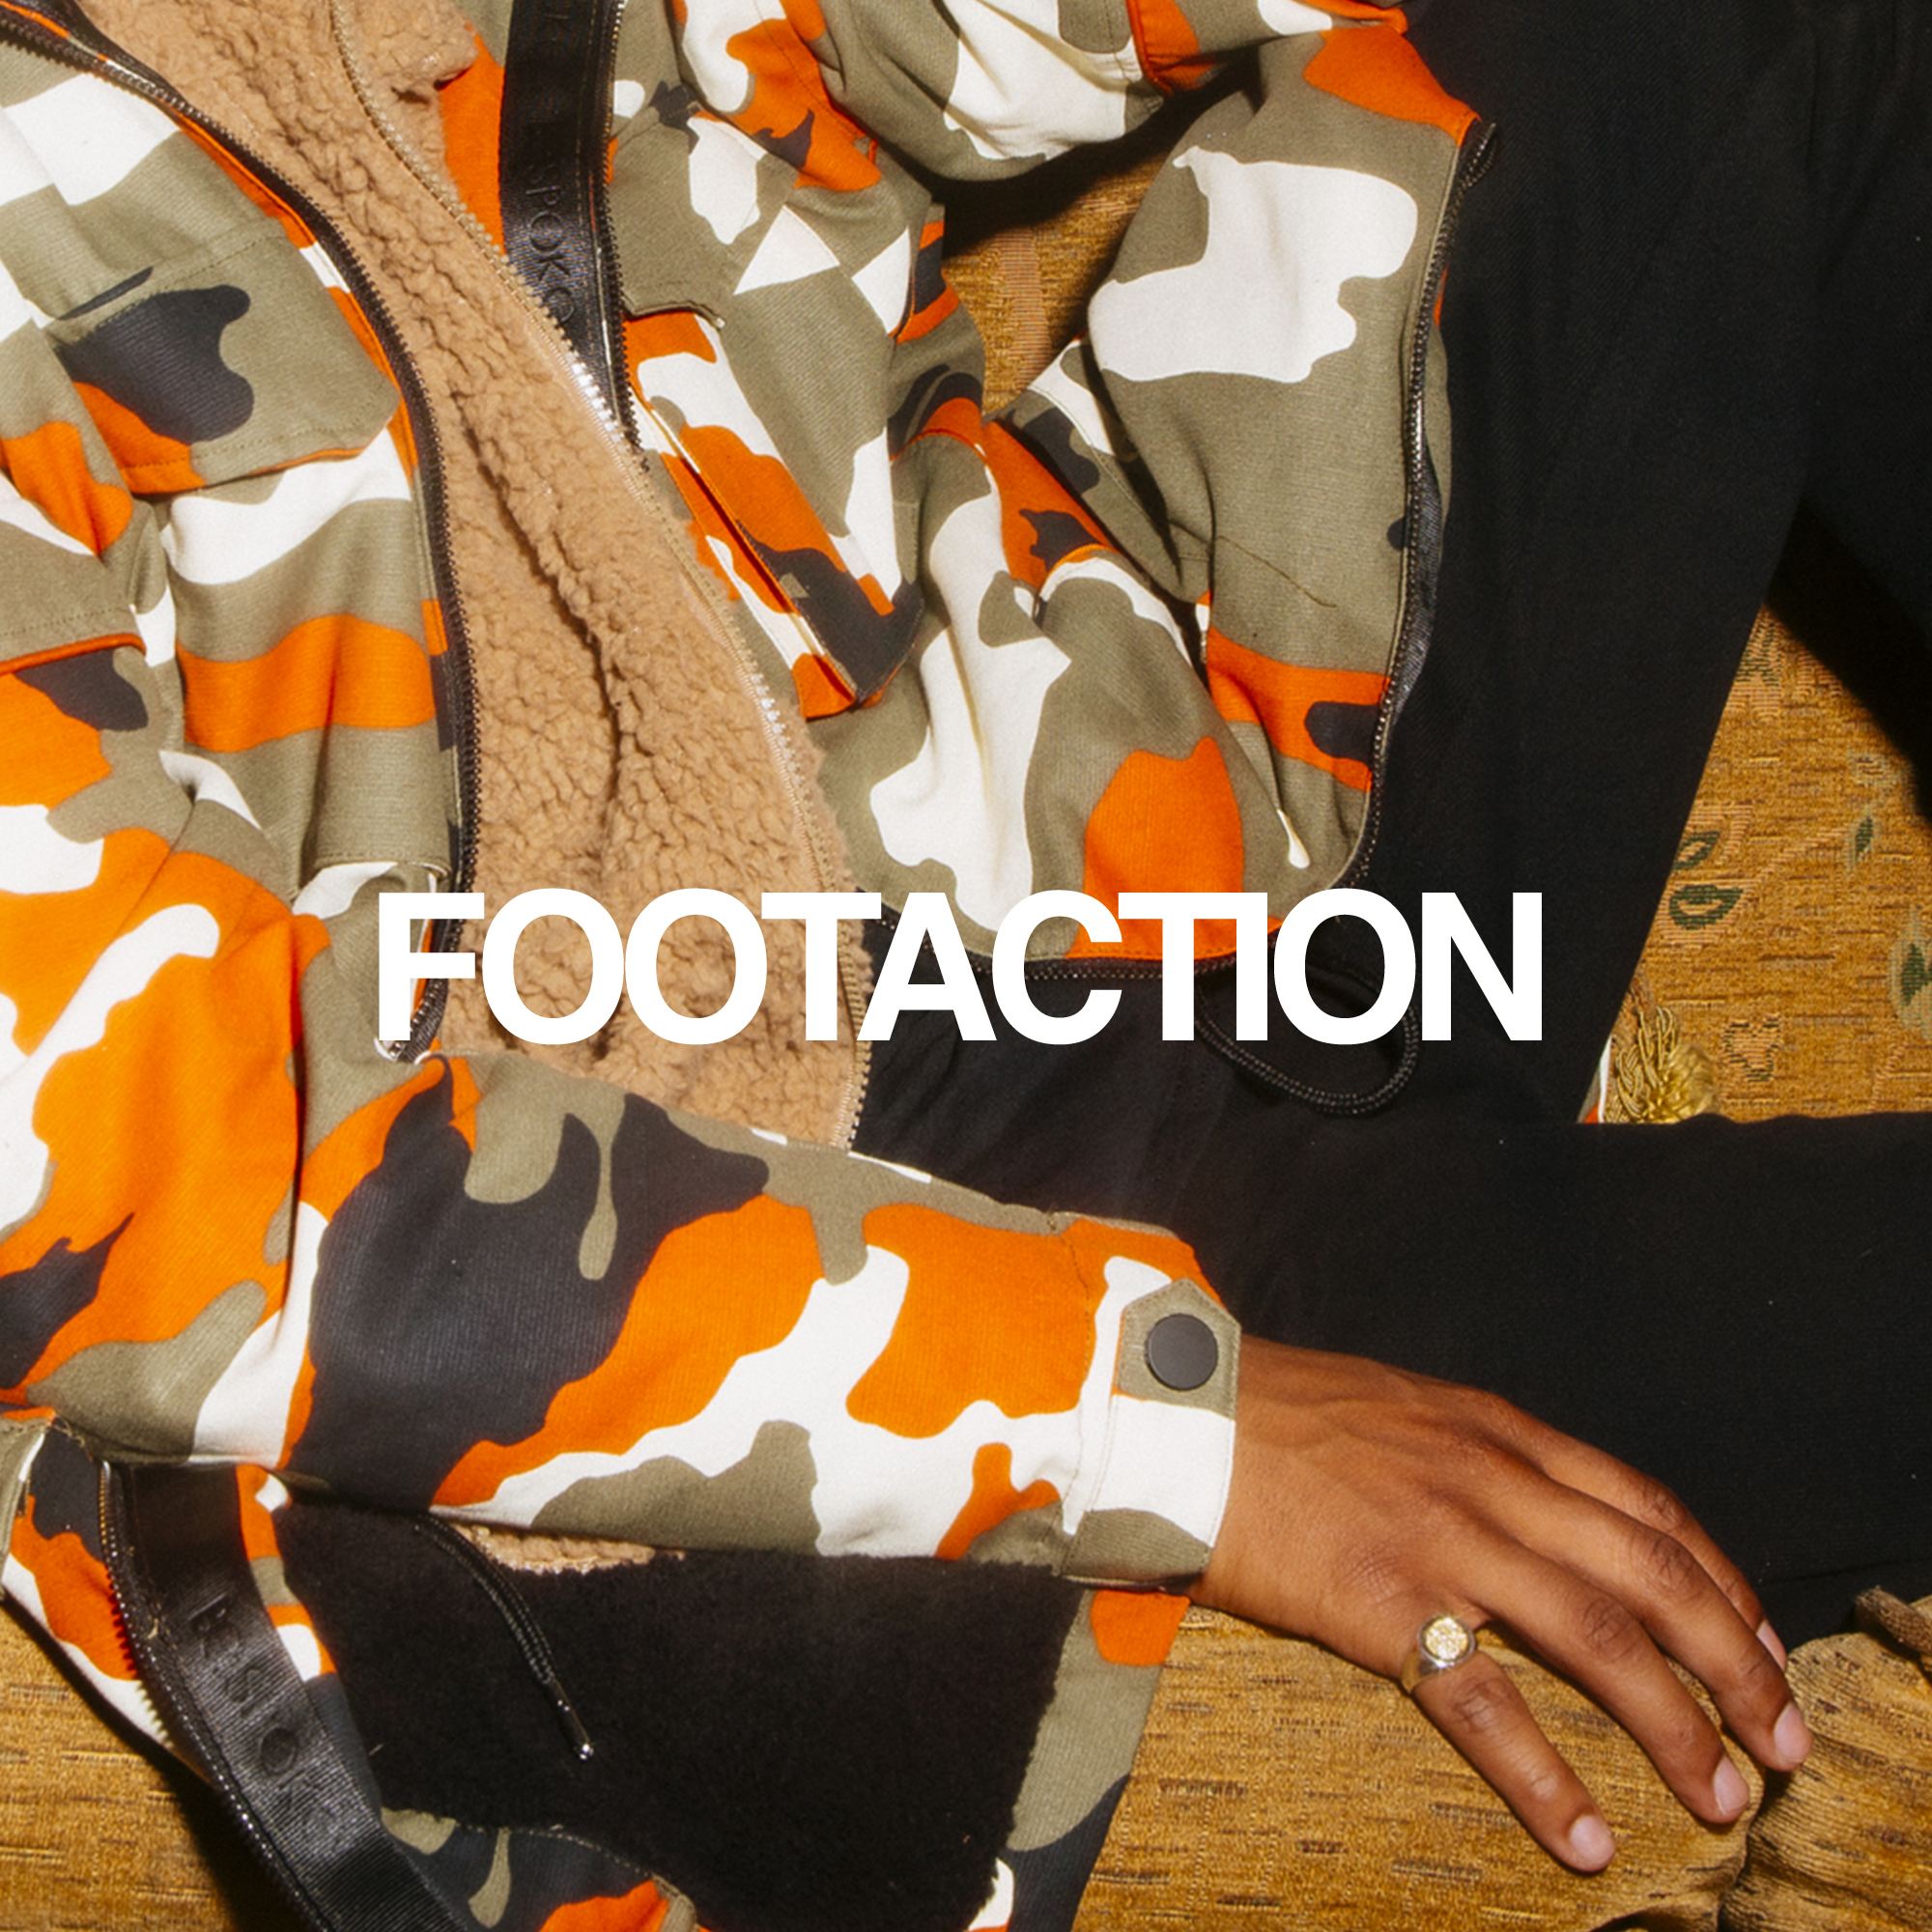 FOOTACTION BUTTON.jpg